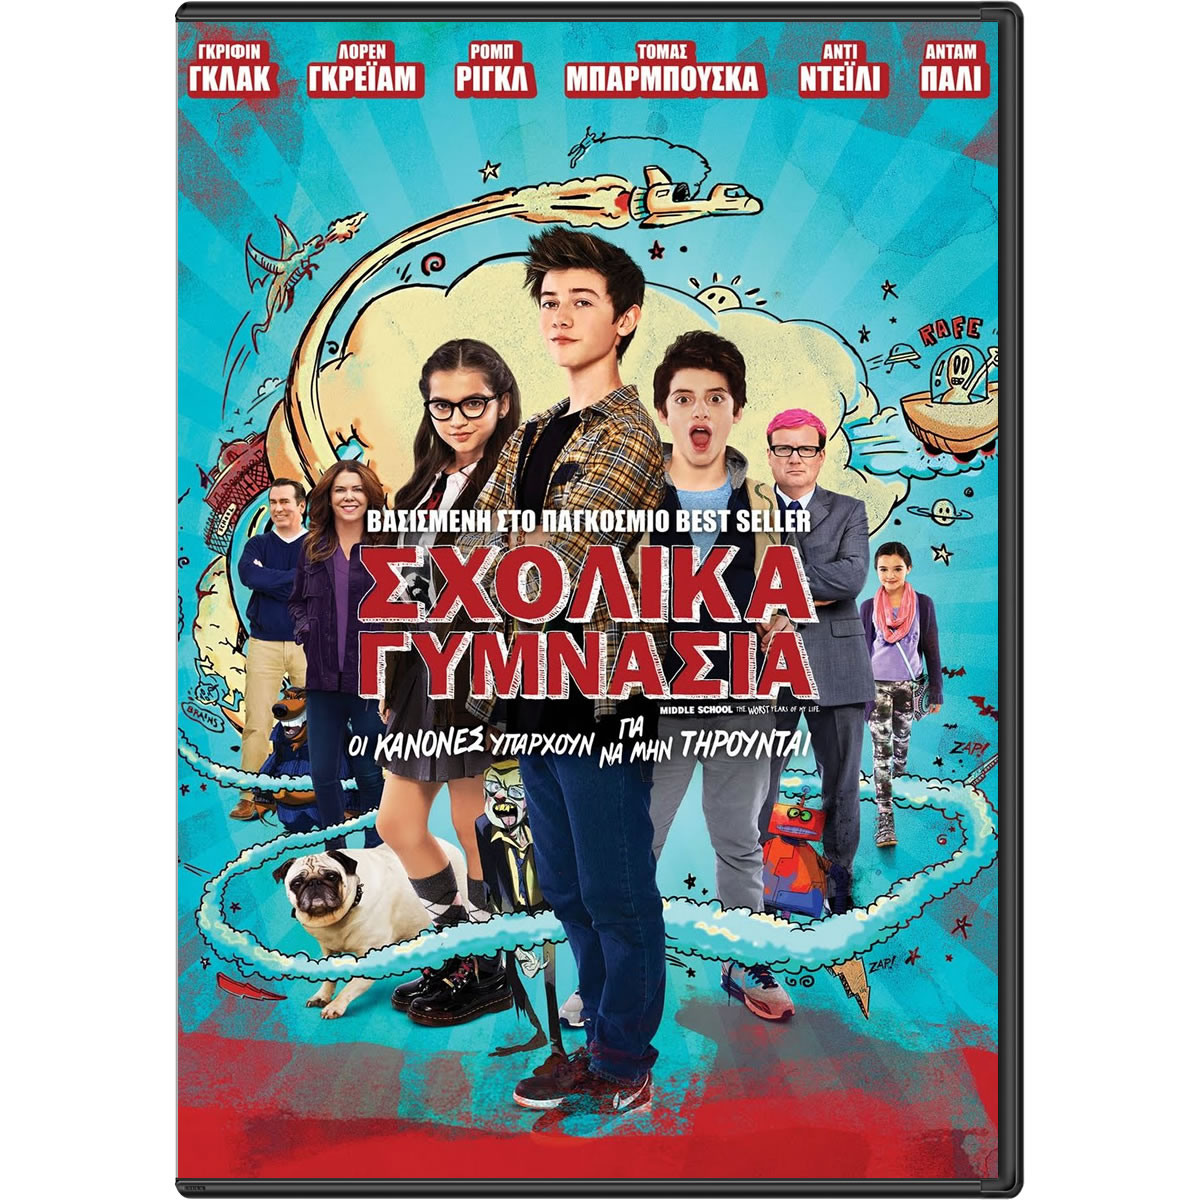 MIDDLE SCHOOL: THE WORST YEARS OF MY LIFE - ΣΧΟΛΙΚΑ ΓΥΜΝΑΣΙΑ (DVD)